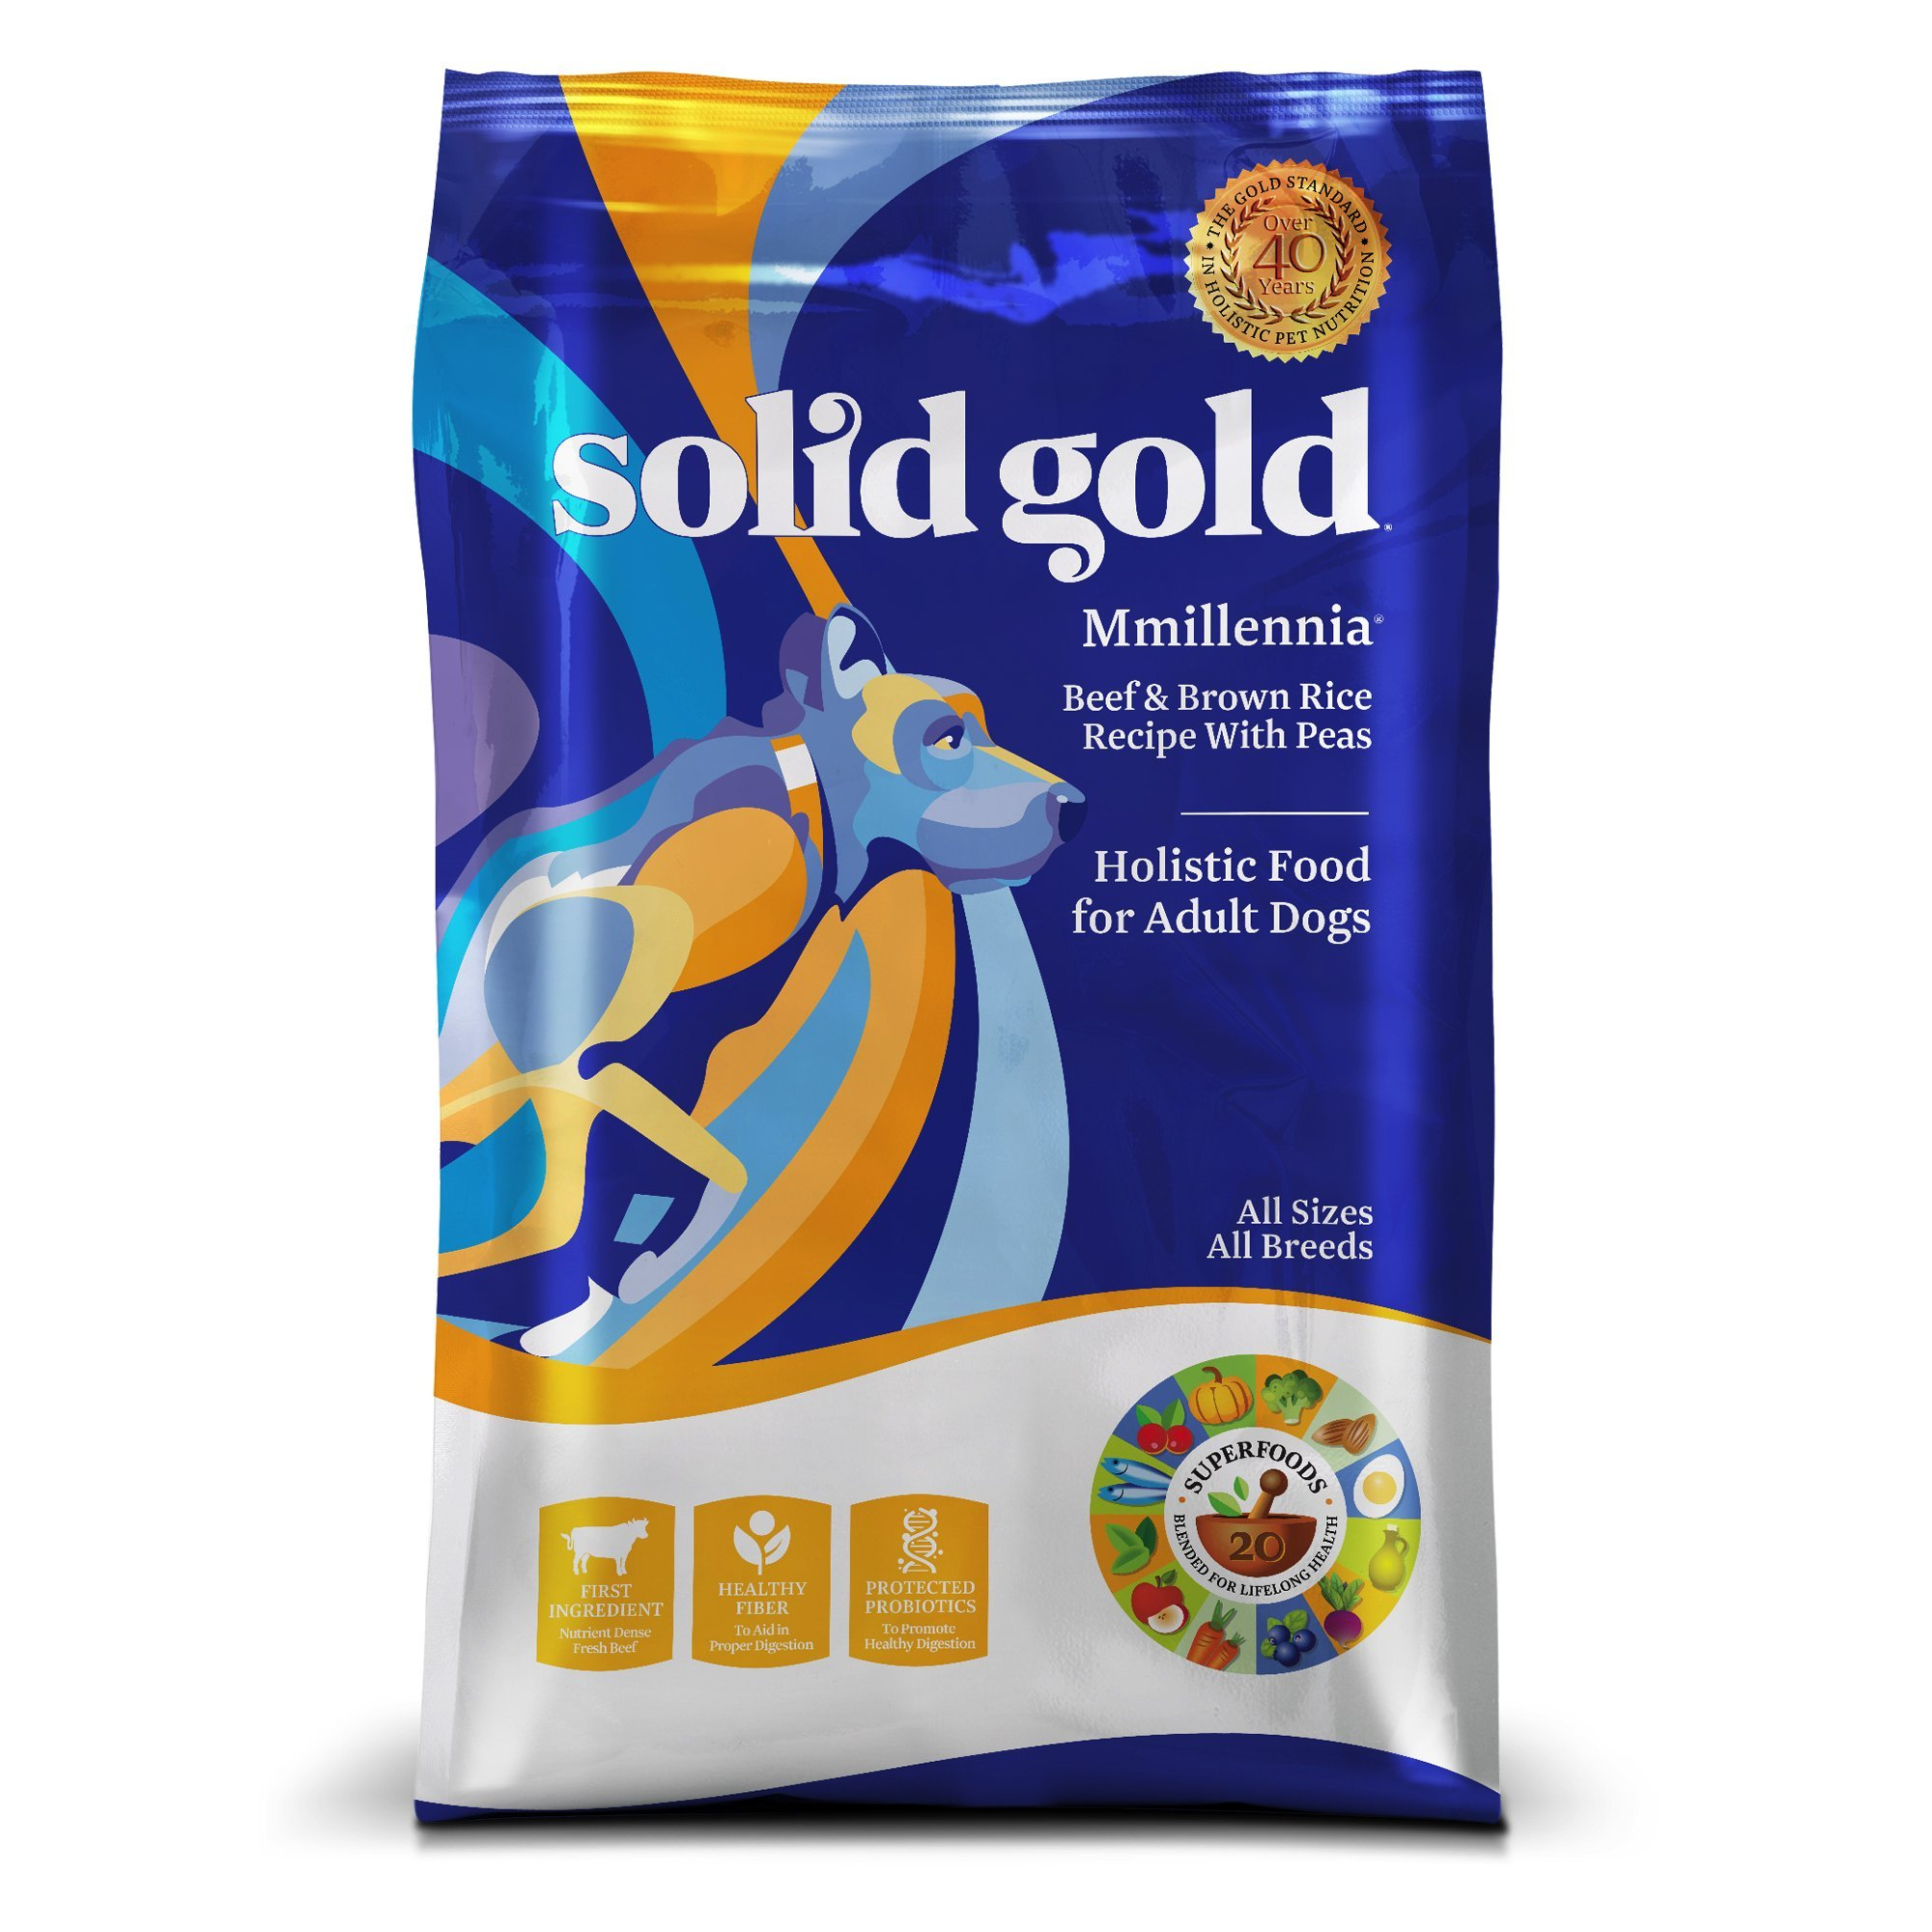 Solid Gold MMillennia Holistic Dry Dog Food, Beef & Brown Rice with Peas, Moderately Active Adult Dogs, All Sizes, 28lb Bag